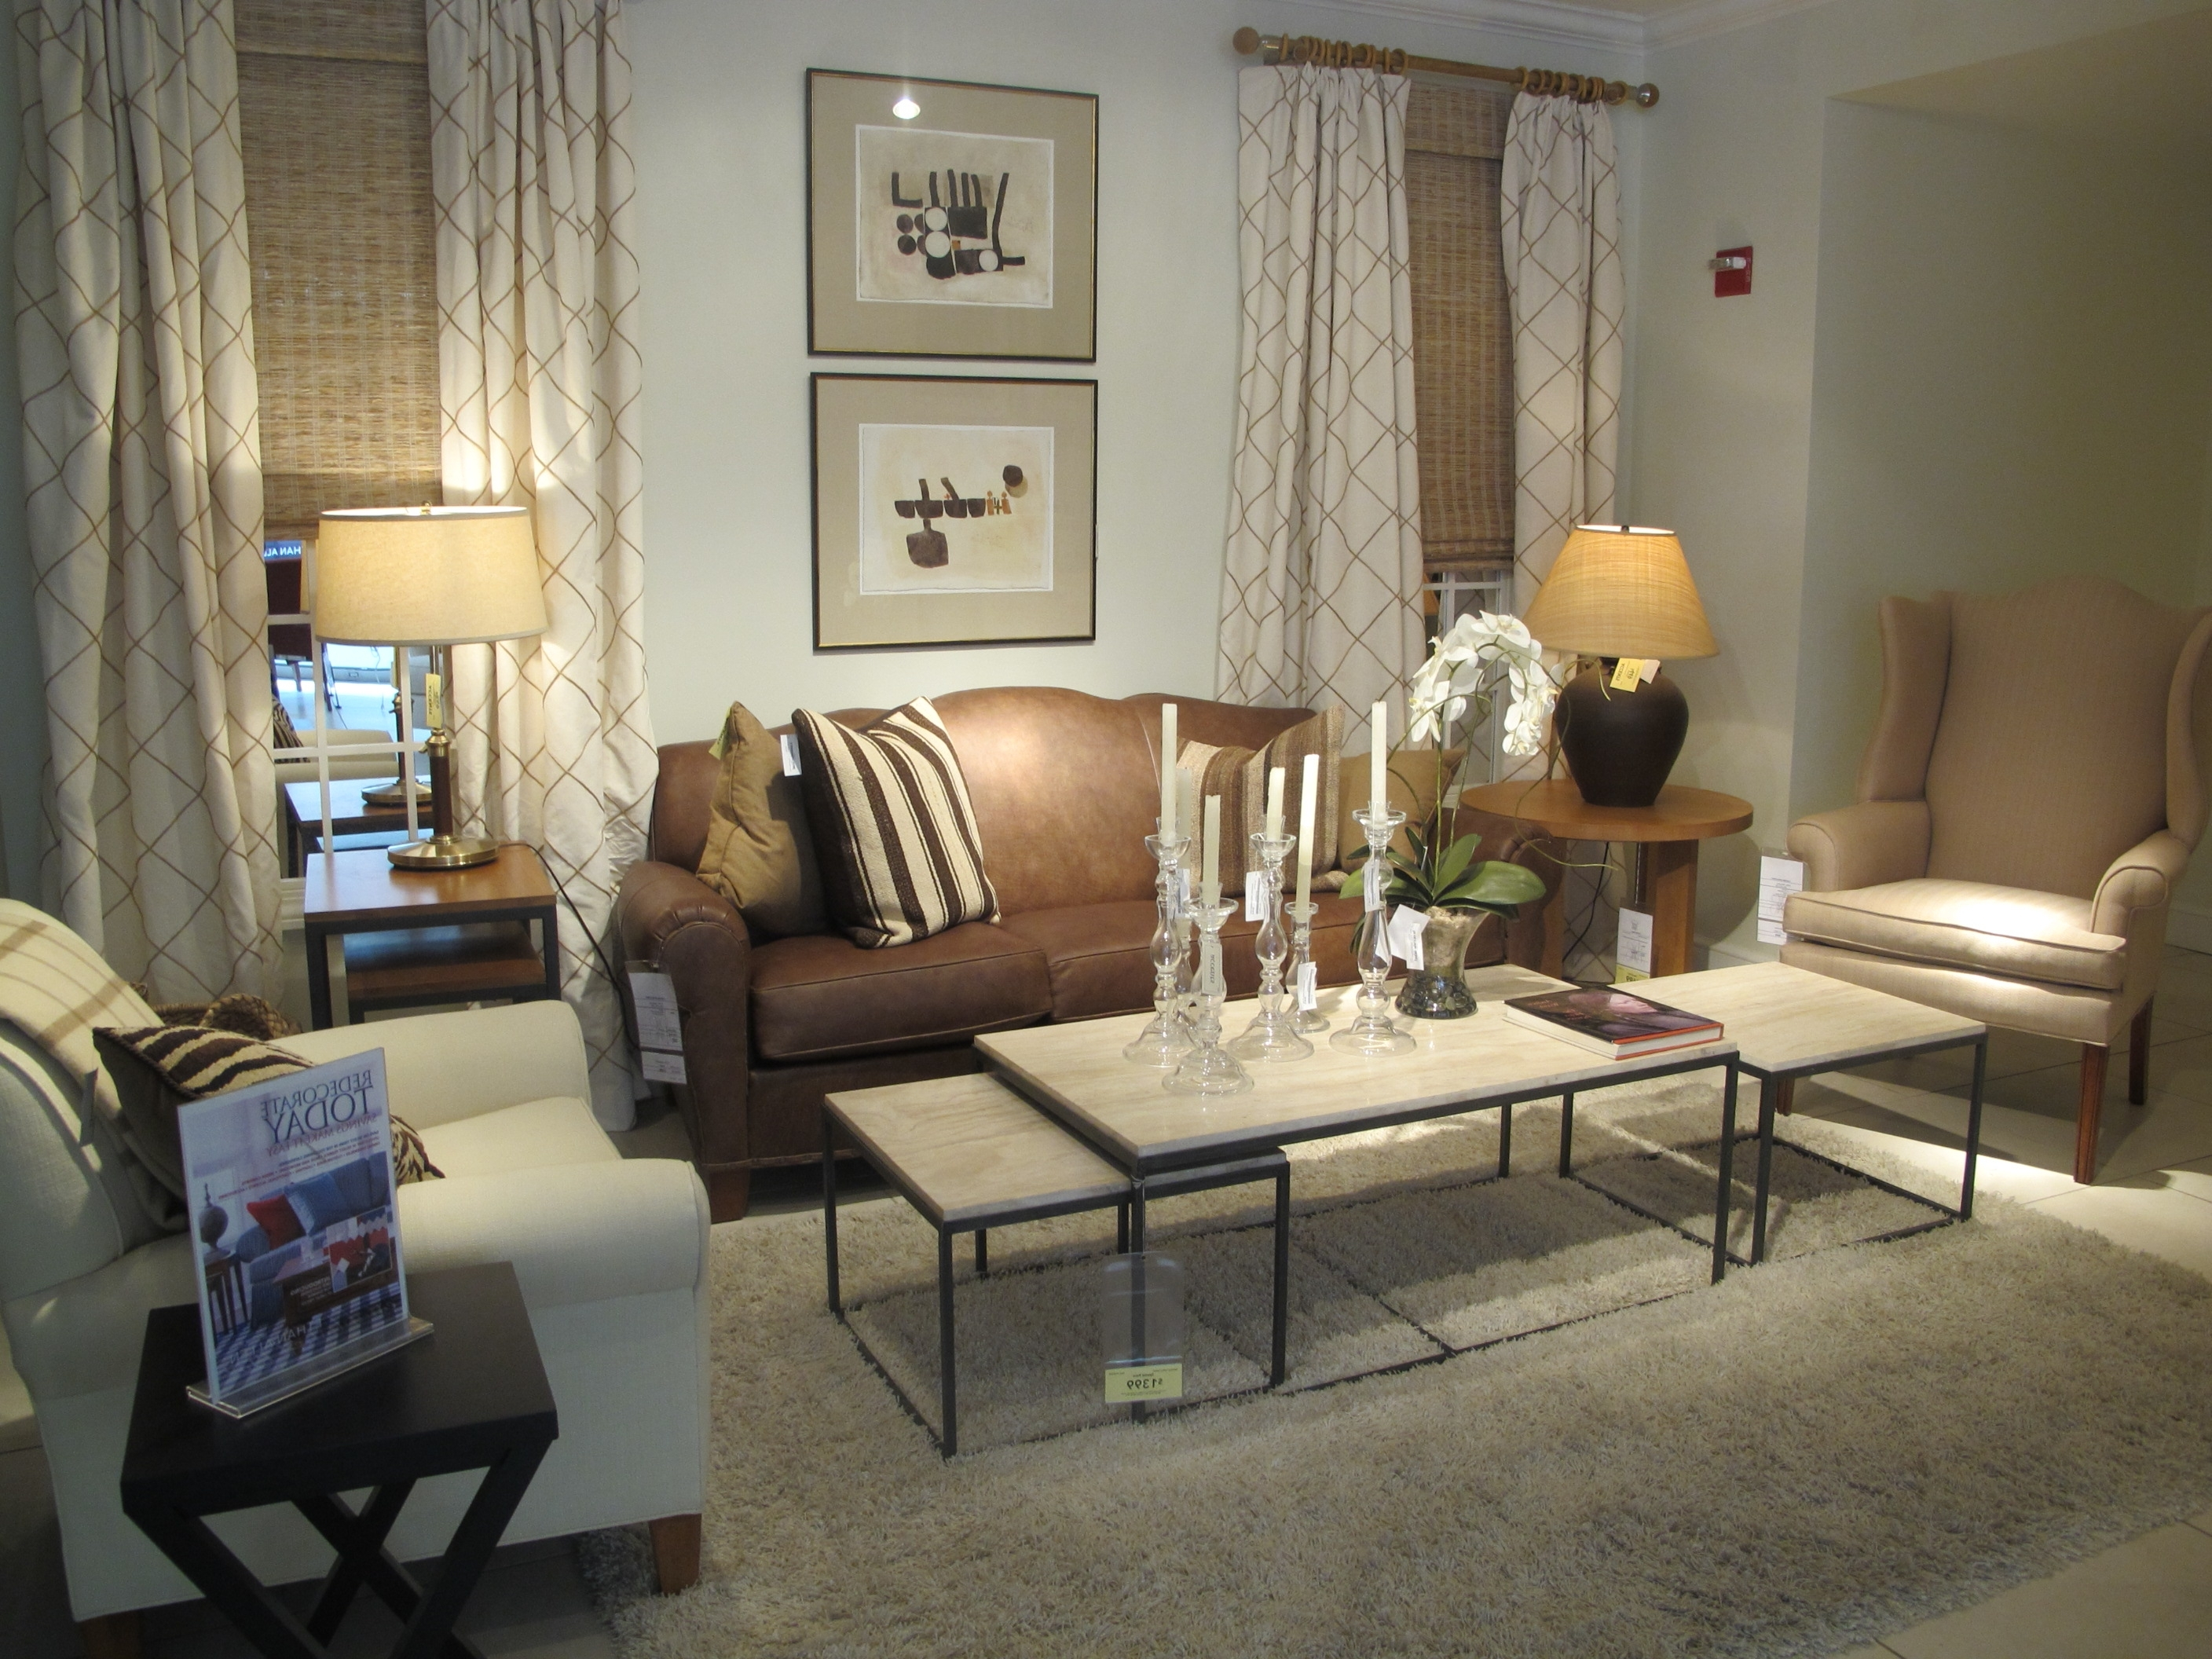 Latest Ethan Allen Sofas And Chairs Inside What's So Horrible About Ethan Allen Anyway? (View 12 of 20)